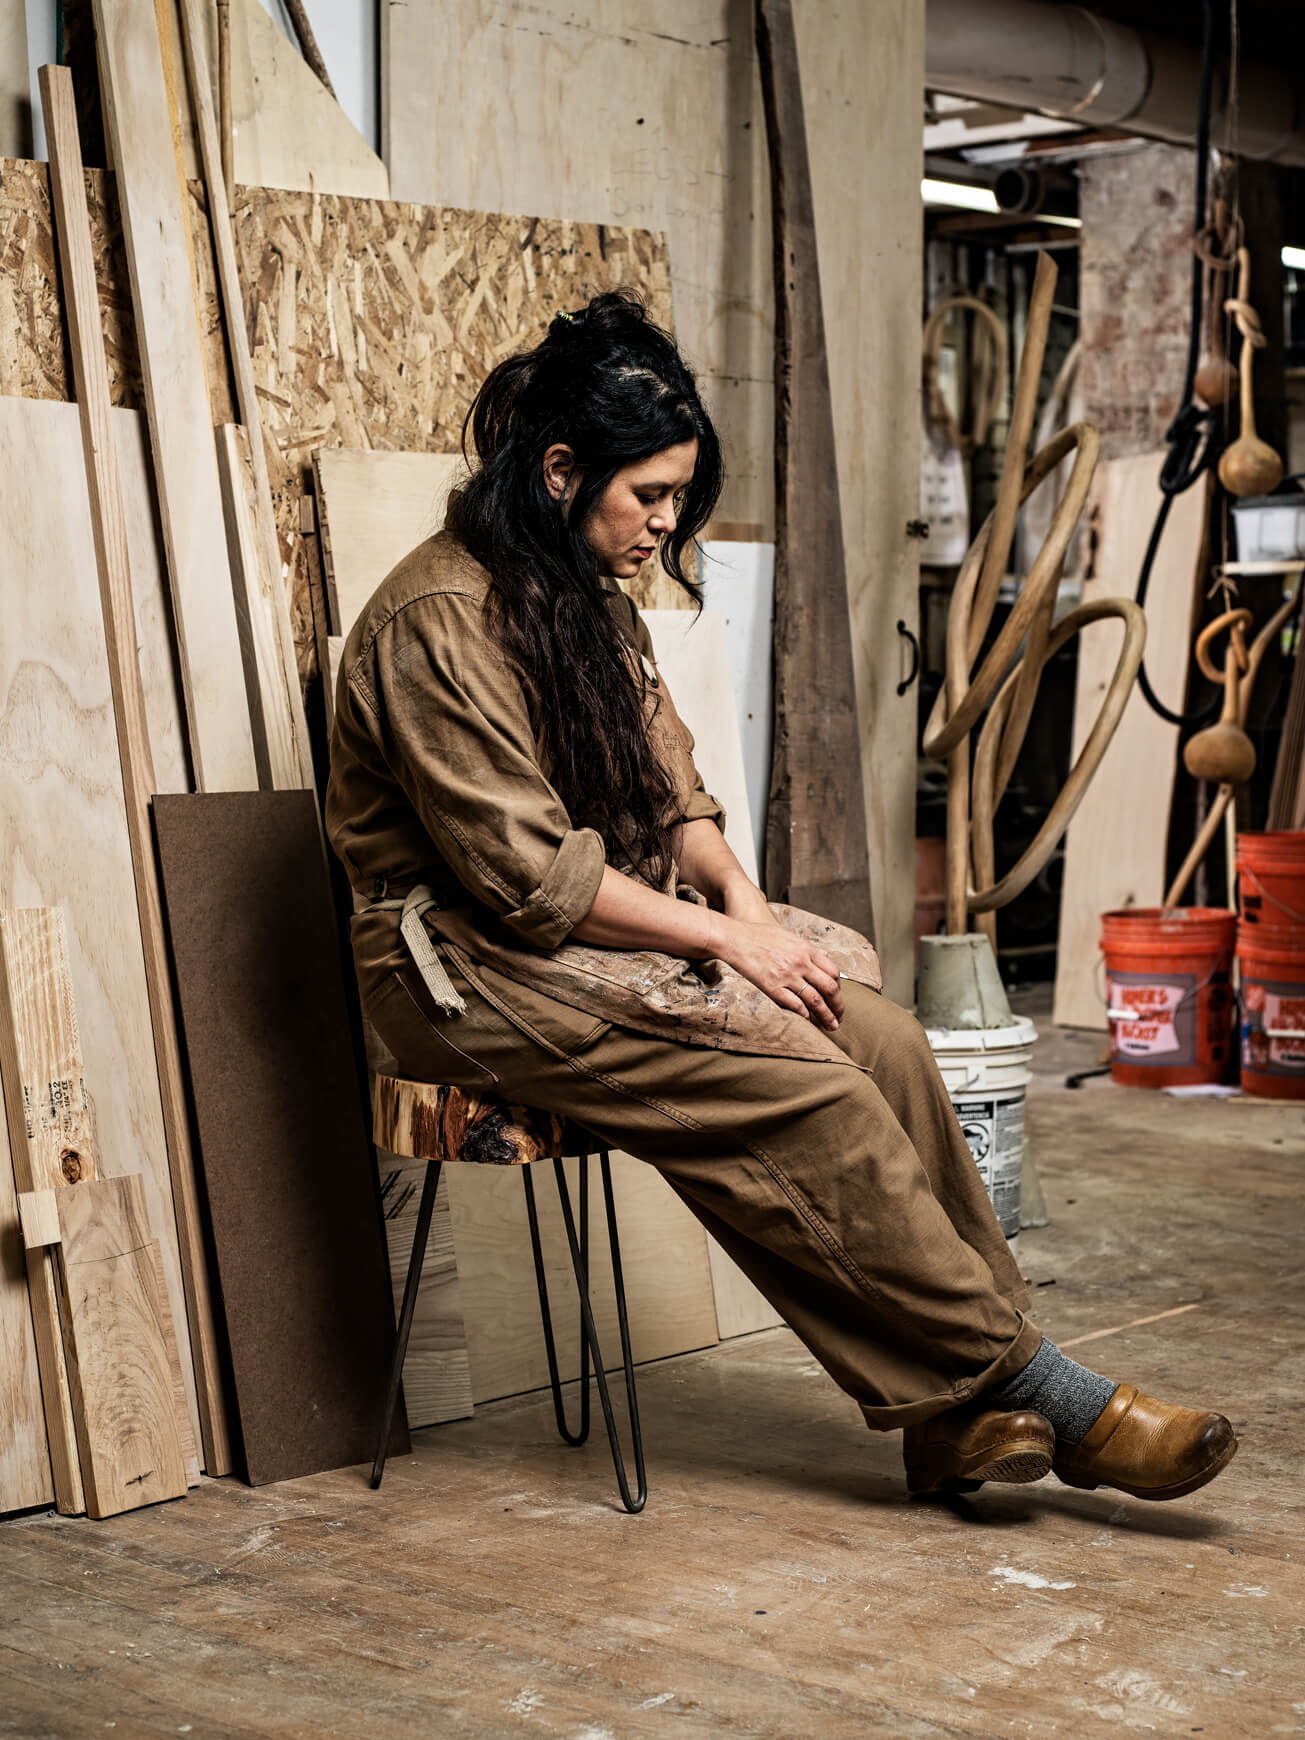 Portrait of sculptor Katie Gong in her artist studio